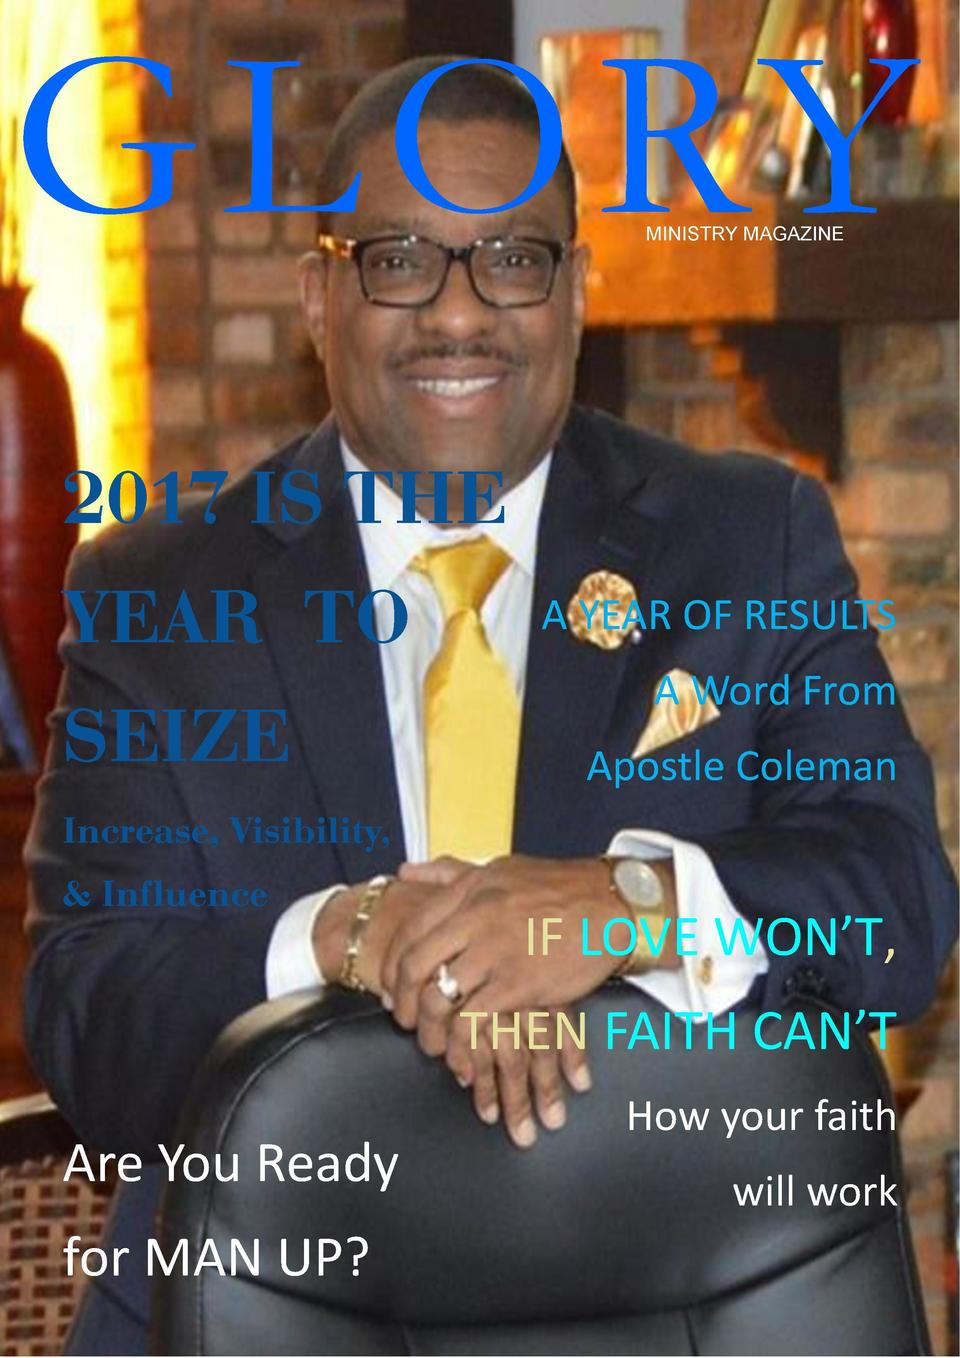 MAN UP 2017    SUPERMEN     MINISTRY MAGAZINE  2017 IS THE YEAR TO MAN UP 2017  SEIZE     SUPERMEN     Increase, Visibilit...